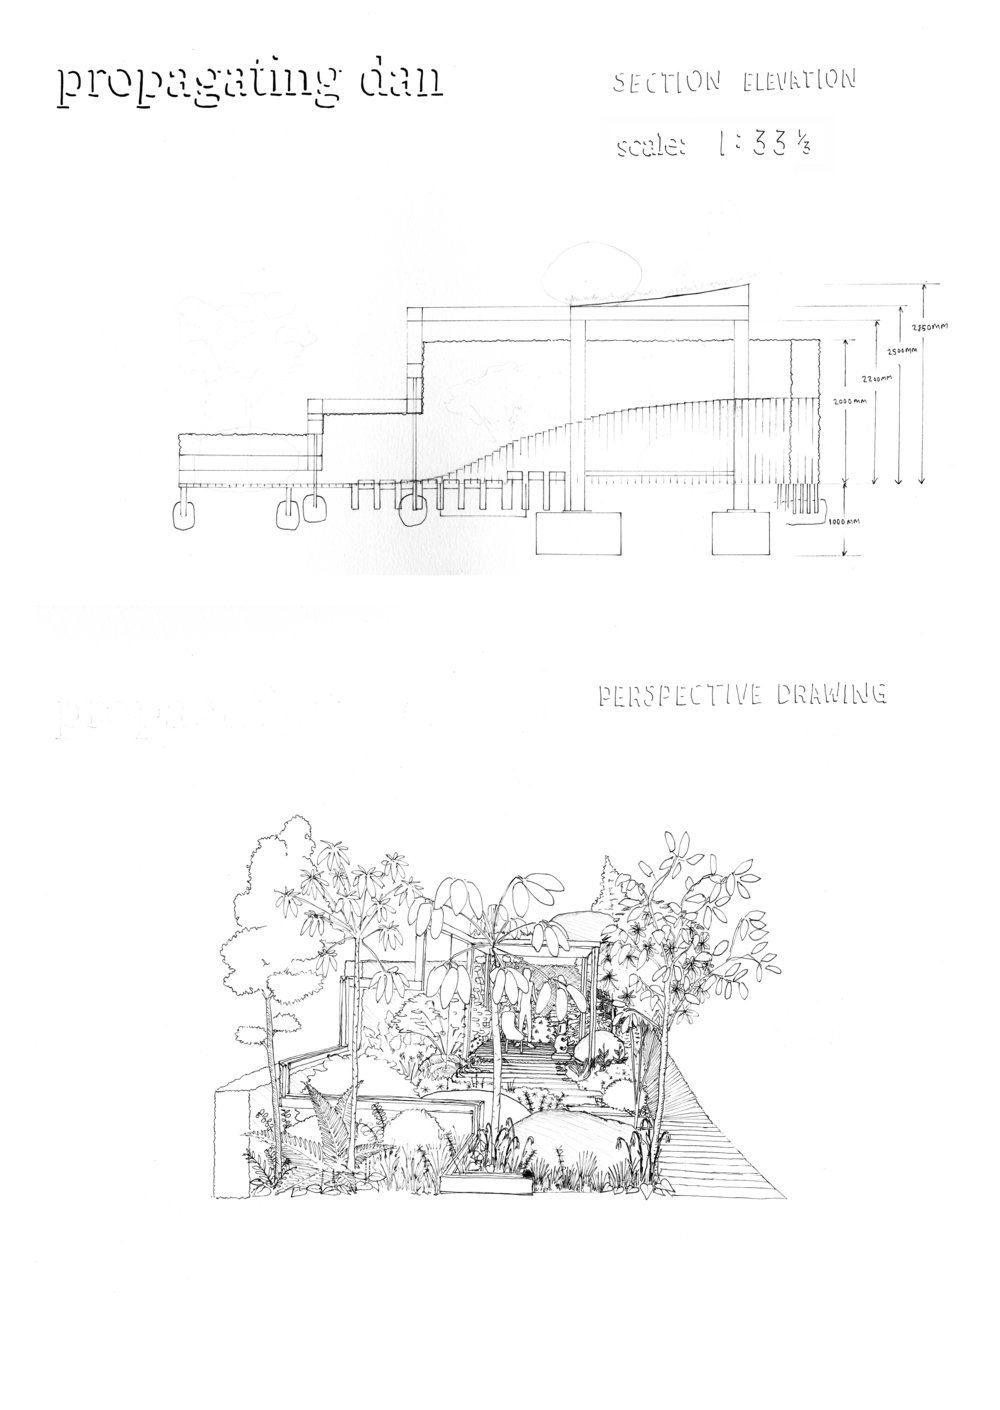 LOW RES Section Elevation & Perspective Drawing.jpg